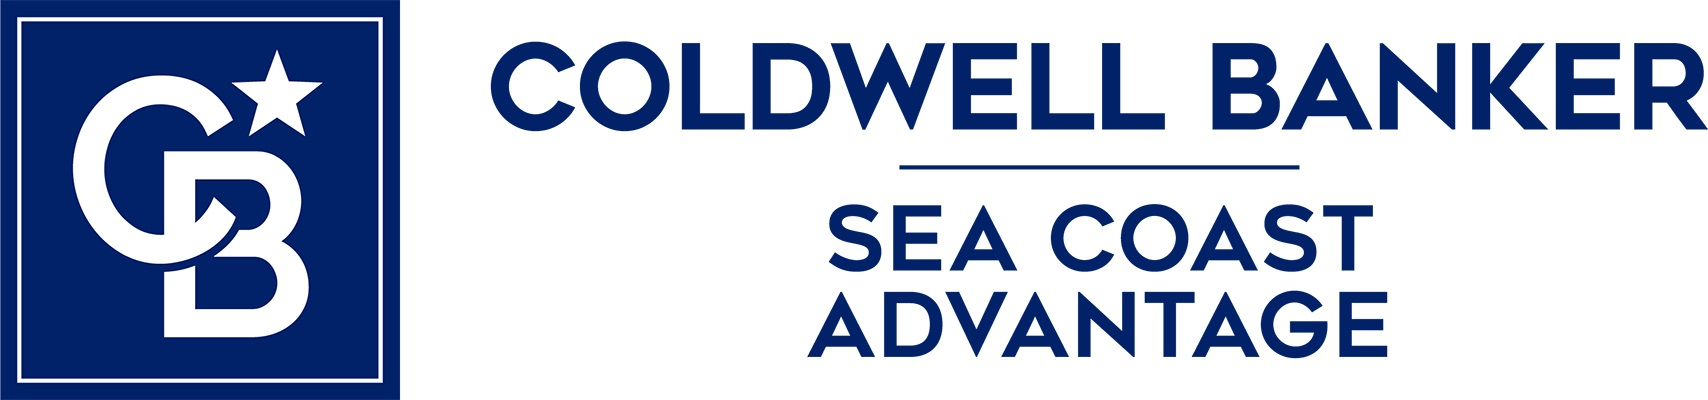 Abby Harris - Coldwell Banker Sea Coast Advantage Realty Logo